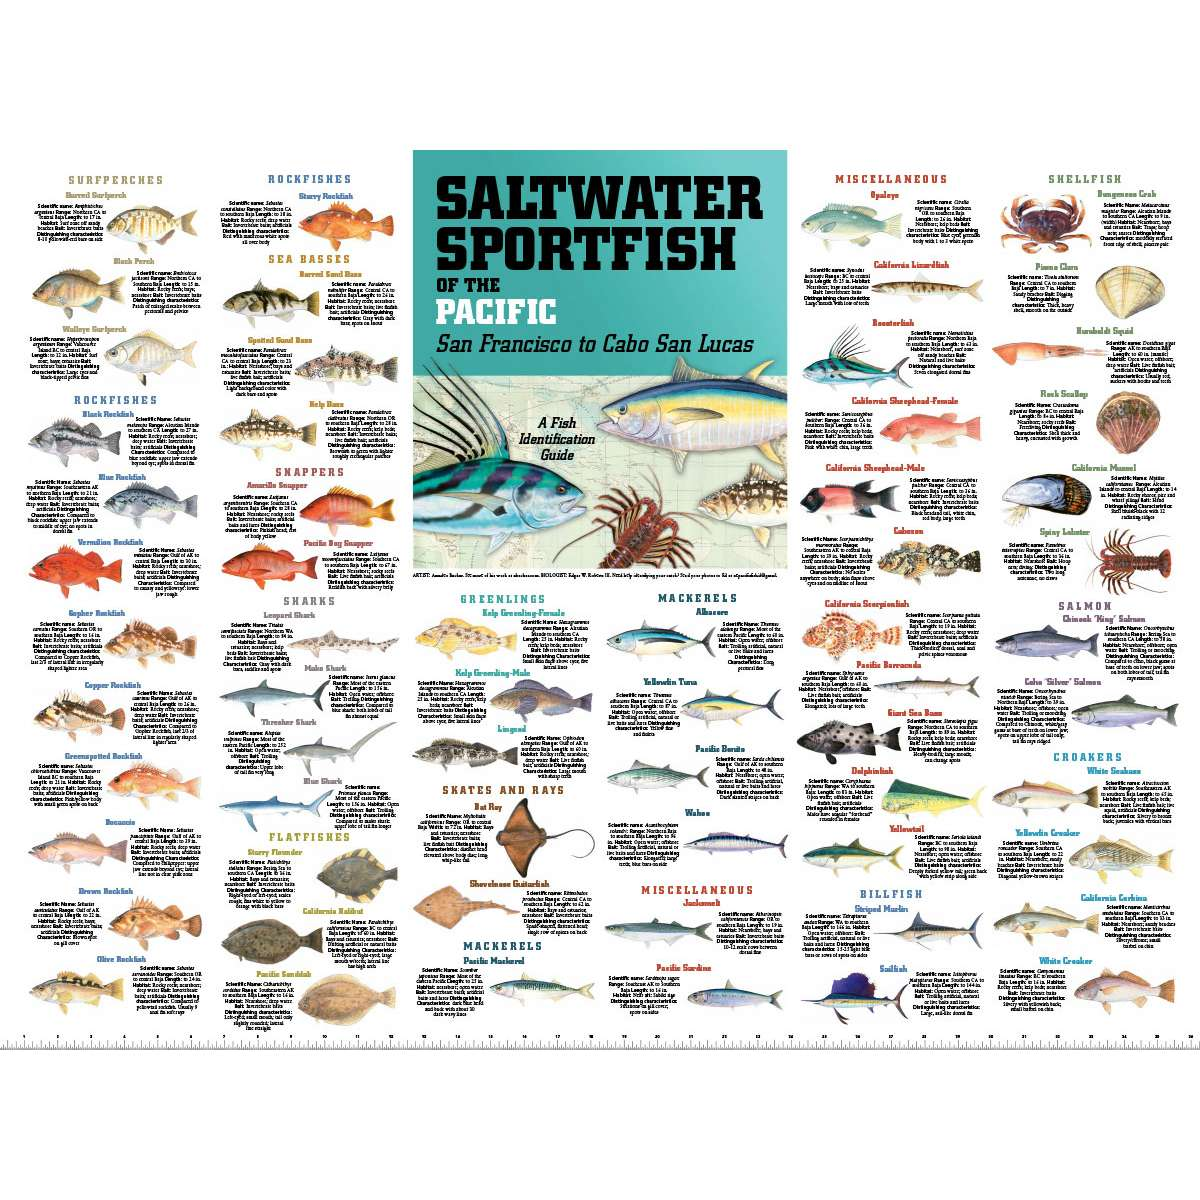 Gift Shop Books Posters Saltwater Sport Fish Of The Pacific San Francisco To Cabo San Lucas Poster Paracay Com Wholesale Books,Stargazing Lily Flowers